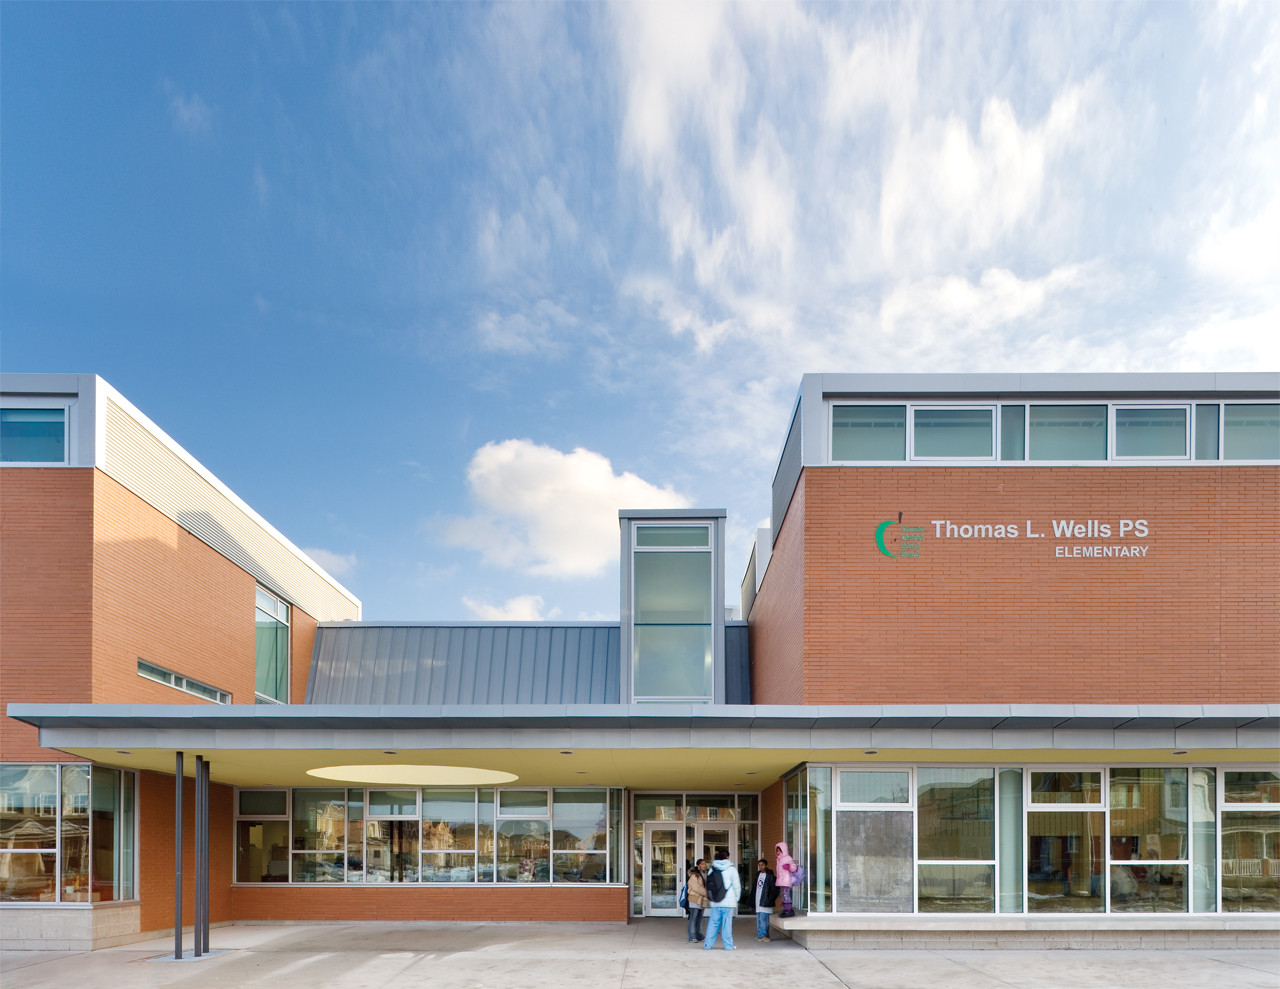 Thomas L. Wells Public School / Baird Sampson Neuert Architects, © Tom Arban